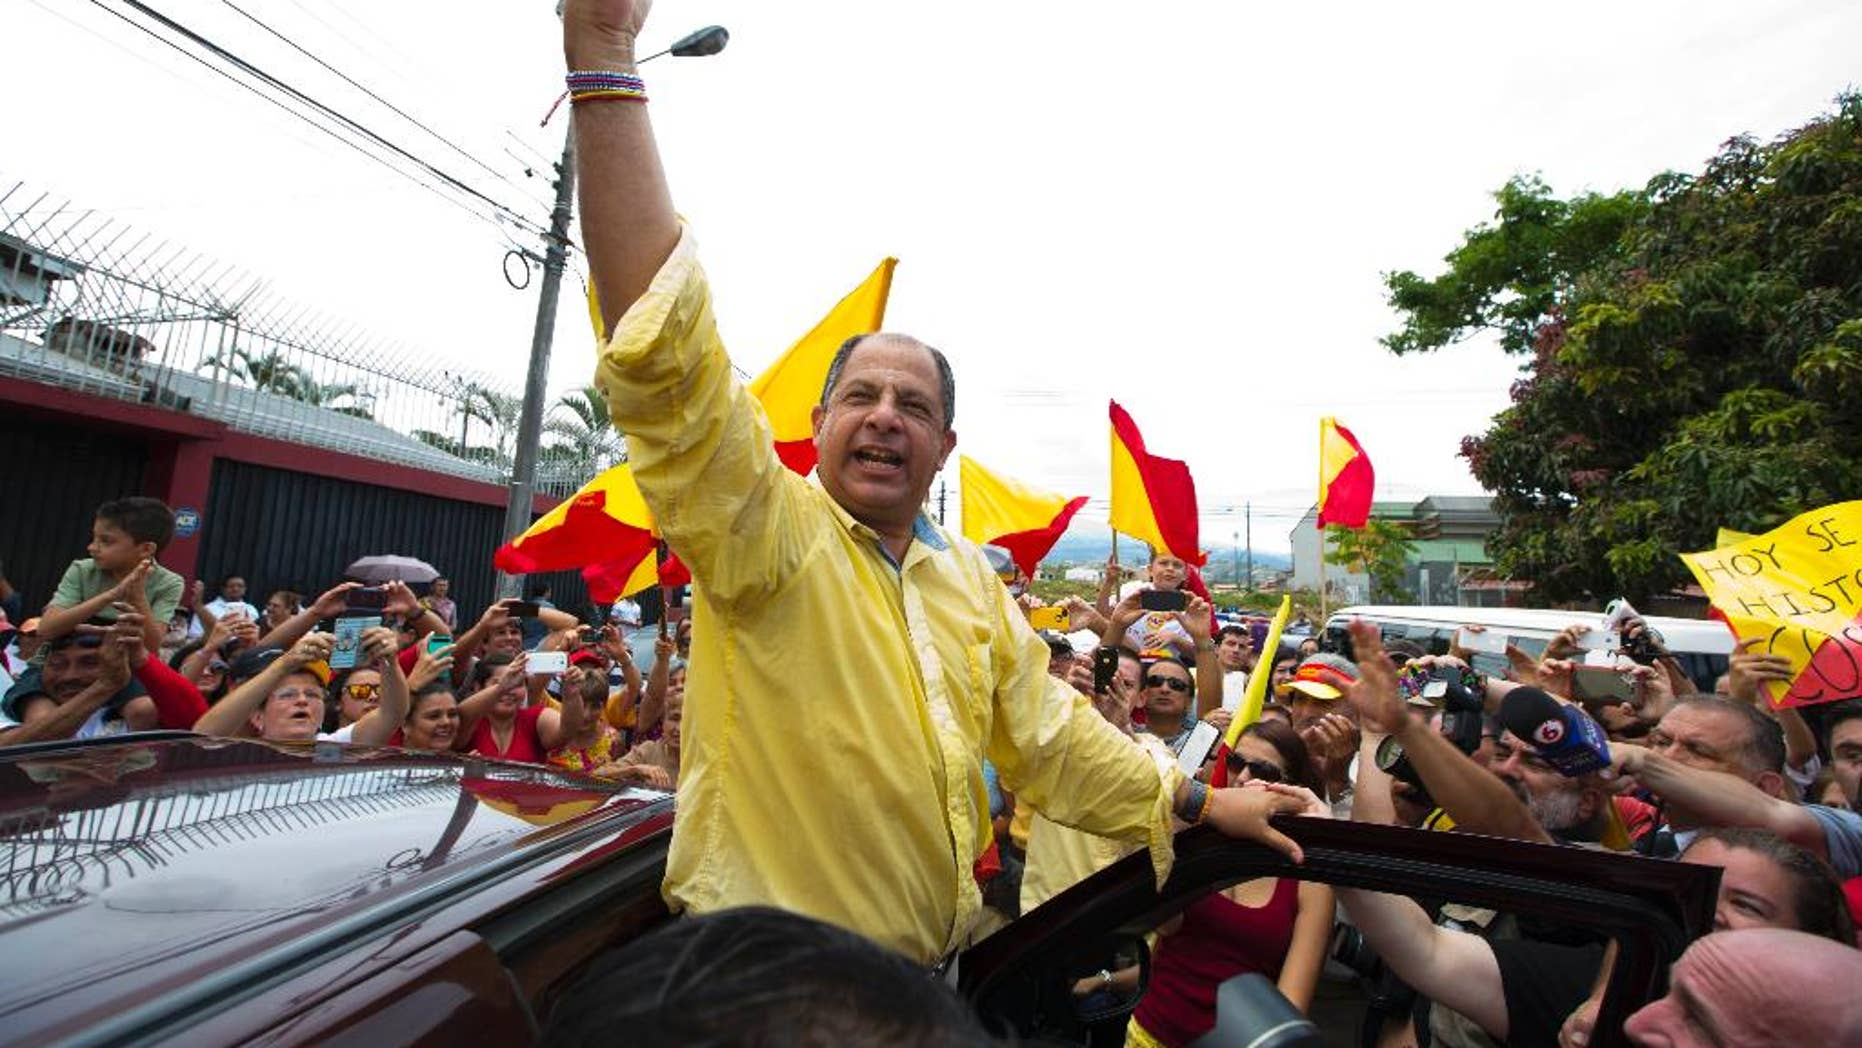 Luis Guillermo Solis, presidential candidate for the Citizen's Action Party, waves to supporters after casting his vote in the presidential runoff election in San Jose, Costa Rica, Sunday, April 6, 2014. Solis' only rival in the runoff dropped out of the race last month, leaving Solis one remaining challenge: getting enough Costa Ricans to the polls to give him a respectable vote total. (AP Photo/Moises Castillo)